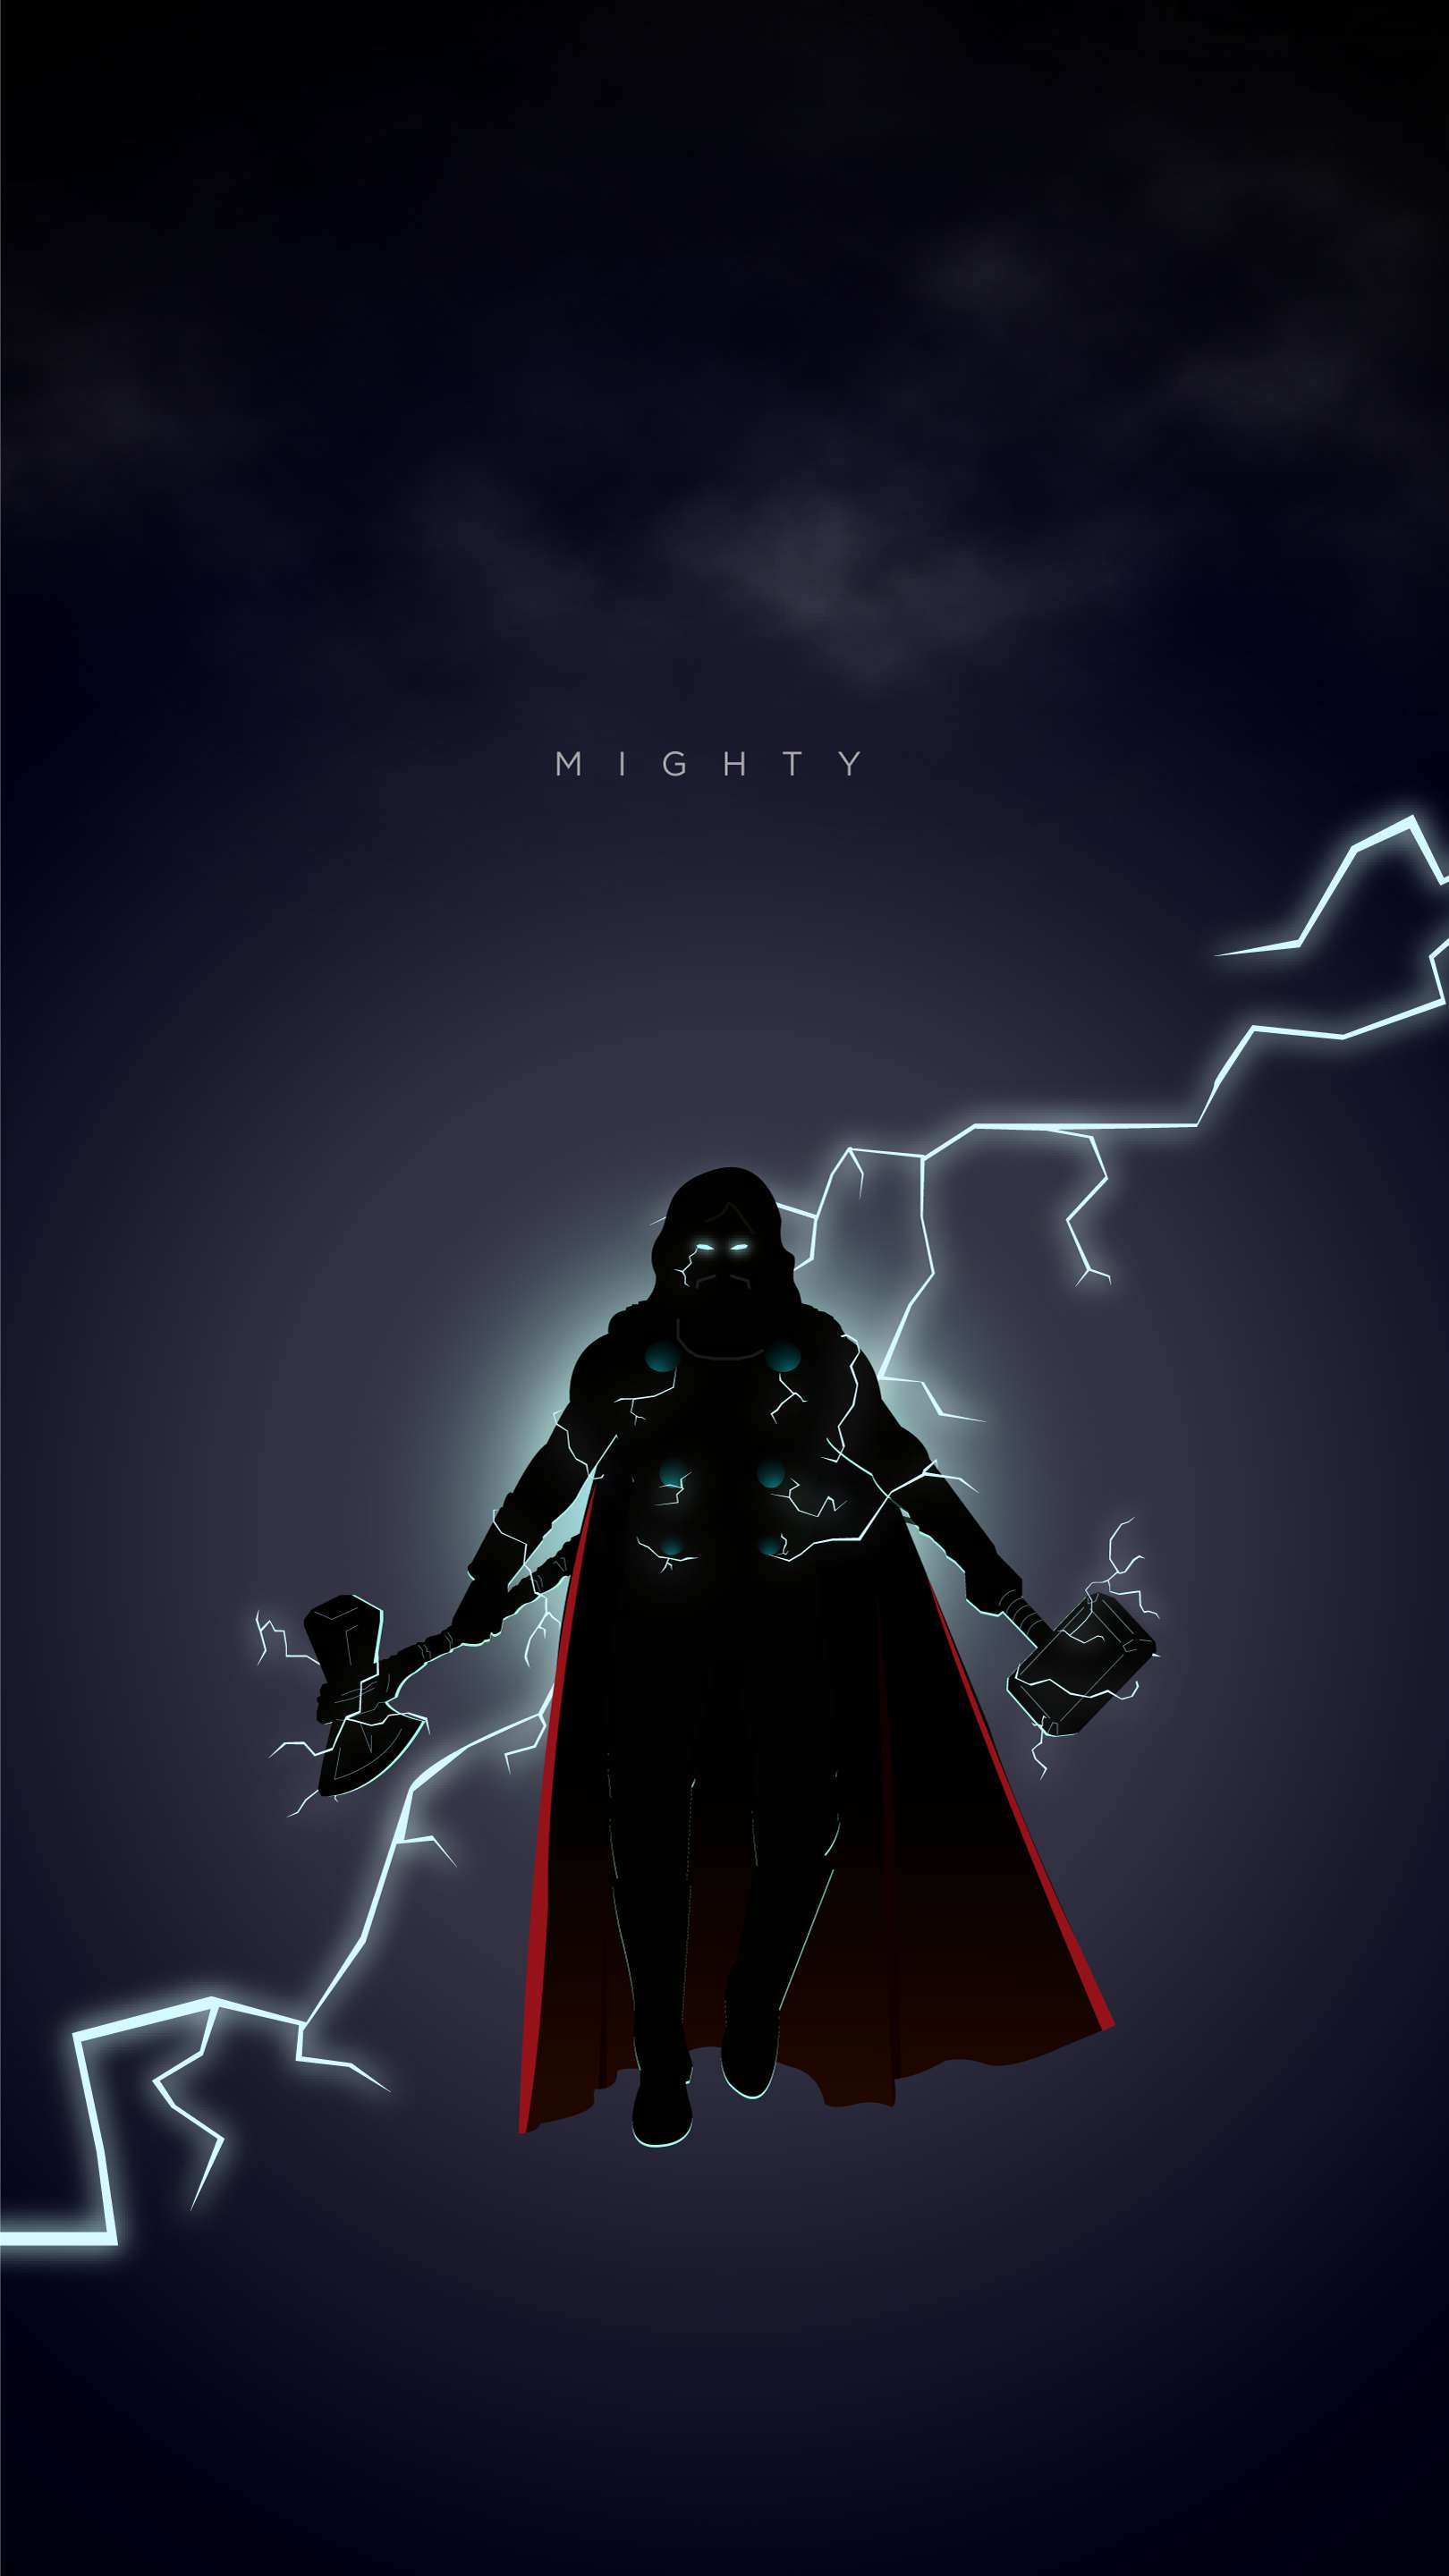 Love Quotes Desktop Wallpaper Thor From Endgame Iphone Wallpaper Iphone Wallpapers